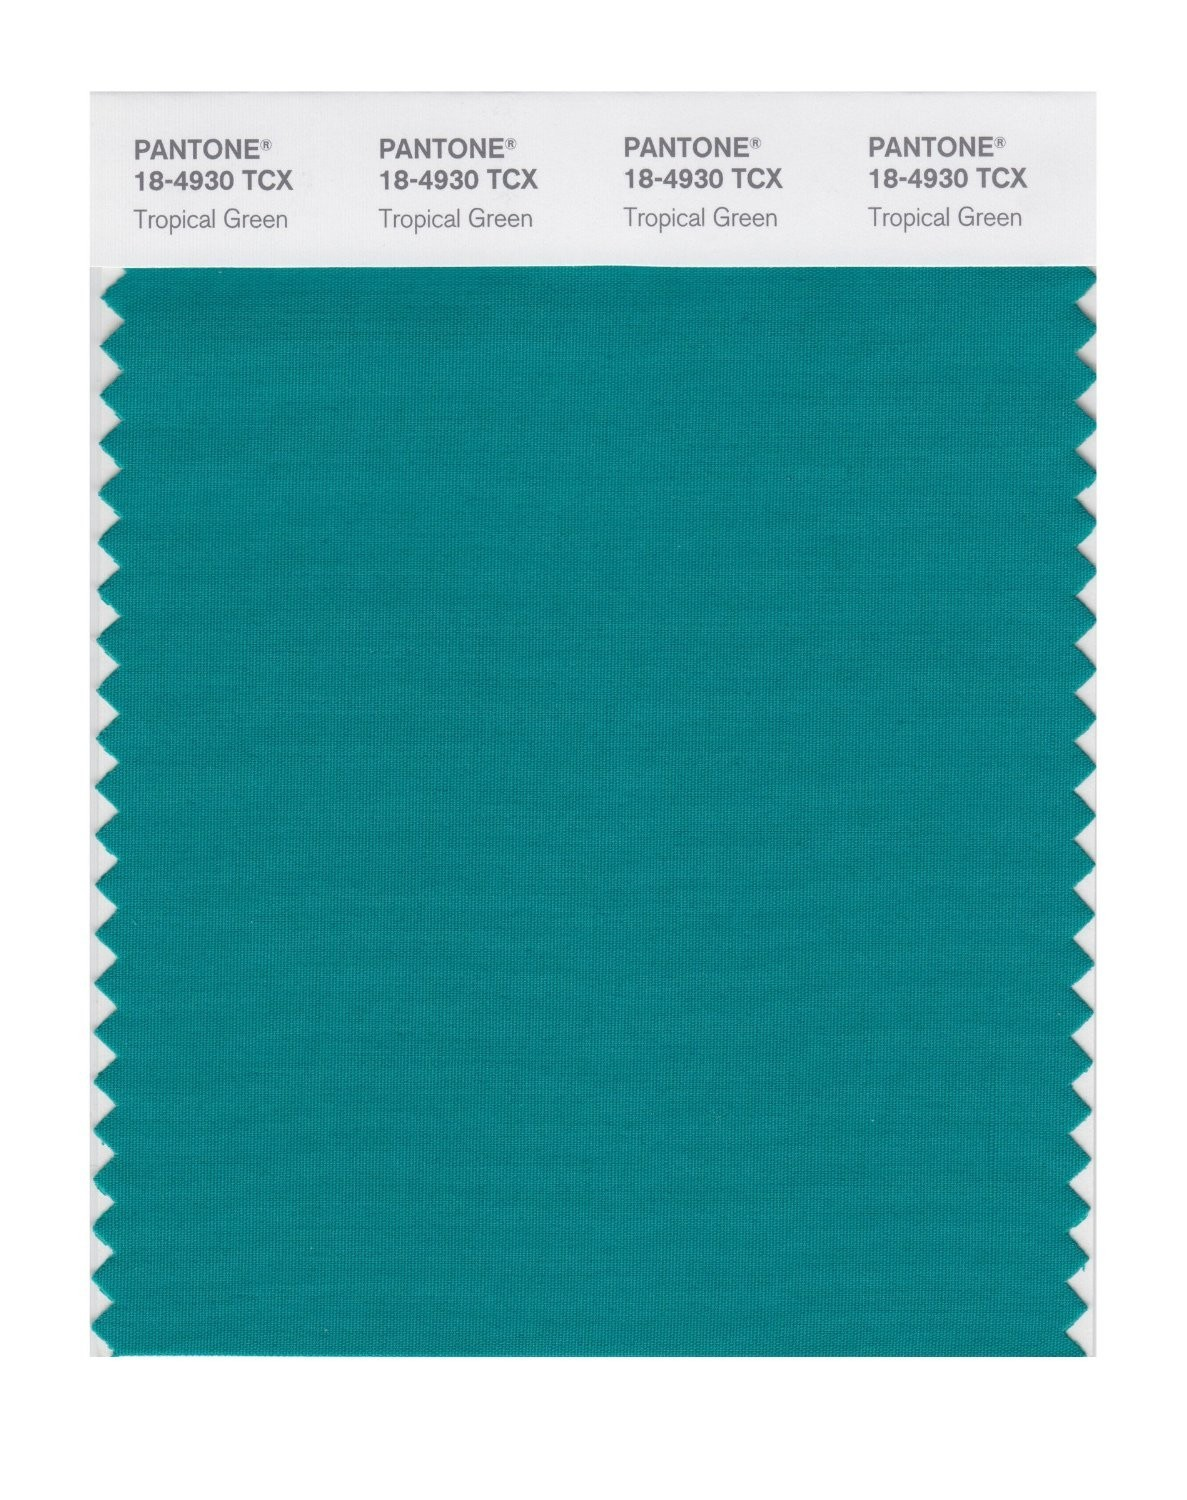 Pantone 18-4930 TCX Swatch Card Tropical Green